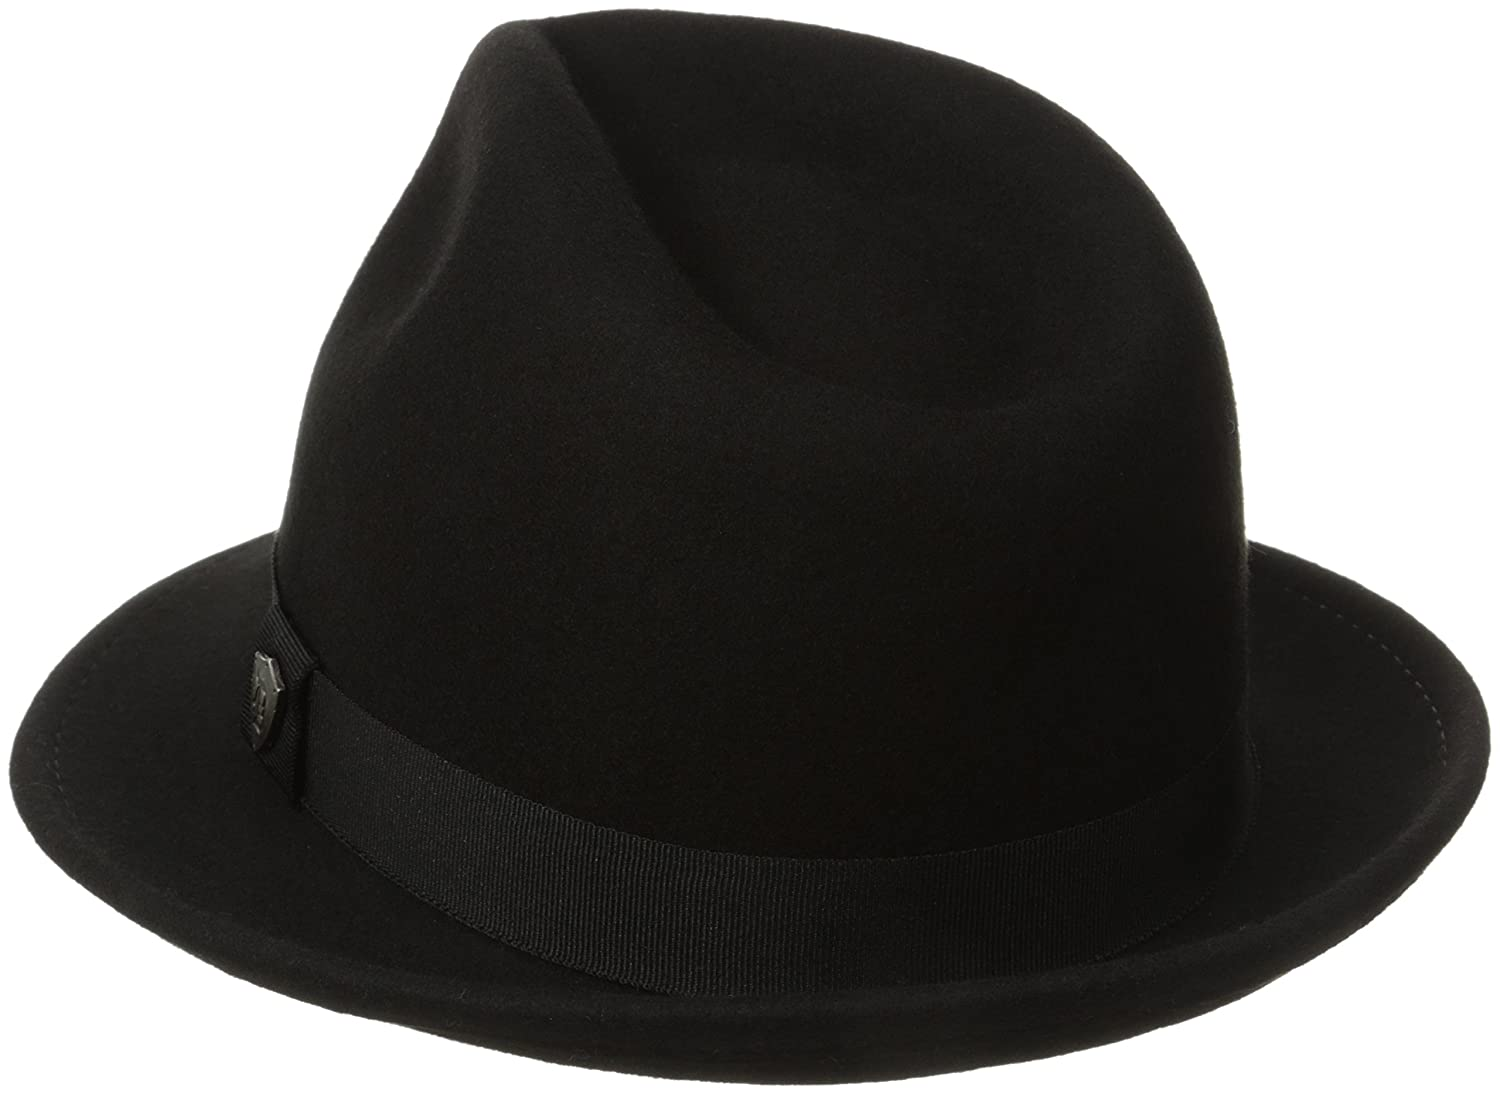 1950s Men's Clothing Dorfman Wool Felt Hat $44.95 AT vintagedancer.com